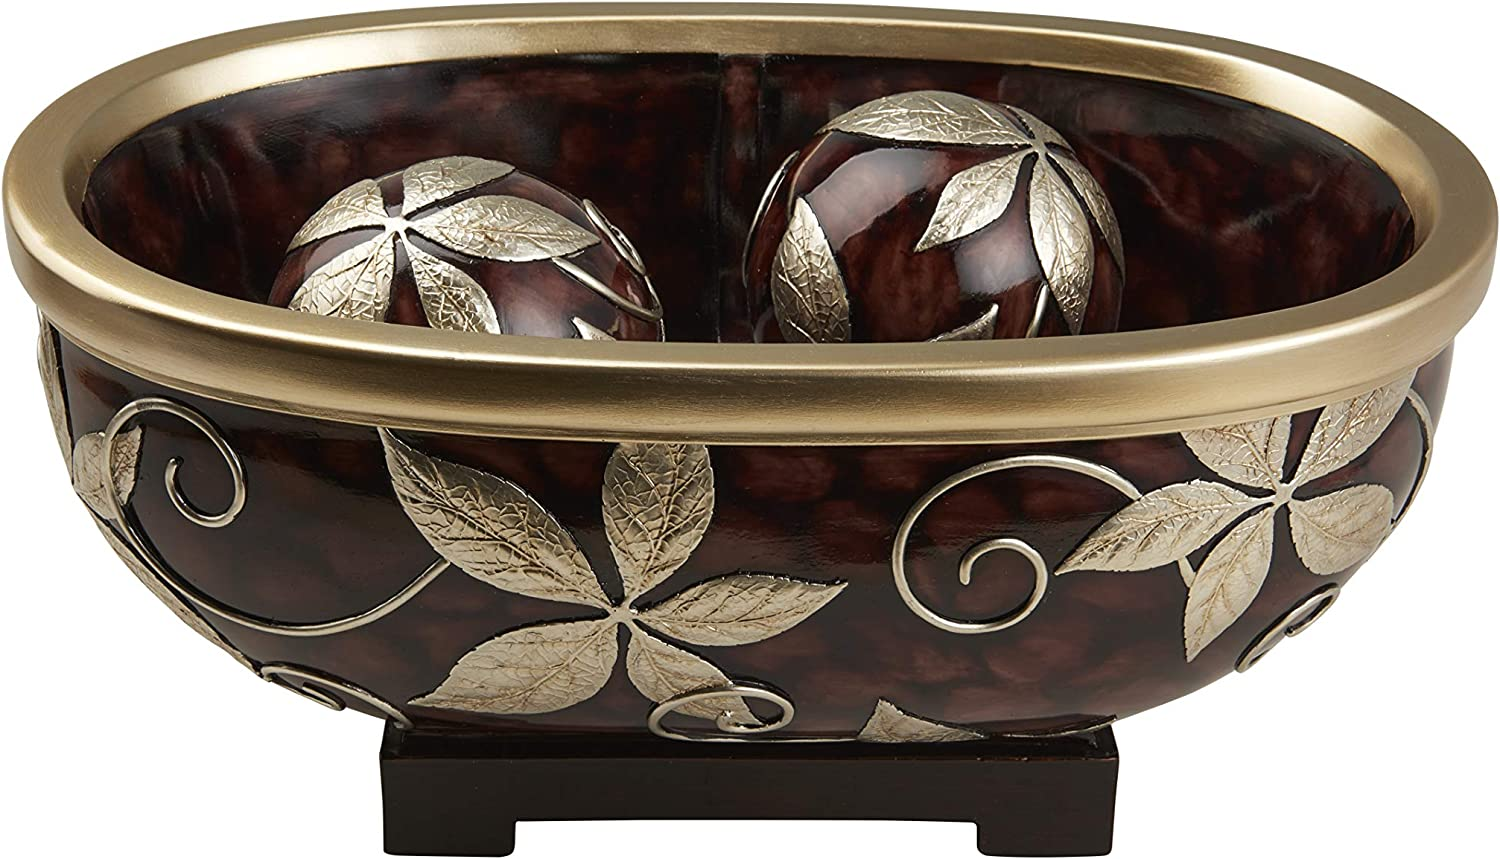 OK Lighting Folius Decorative Bowl Brown Spheres Gold Cheap super special price Surprise price with and